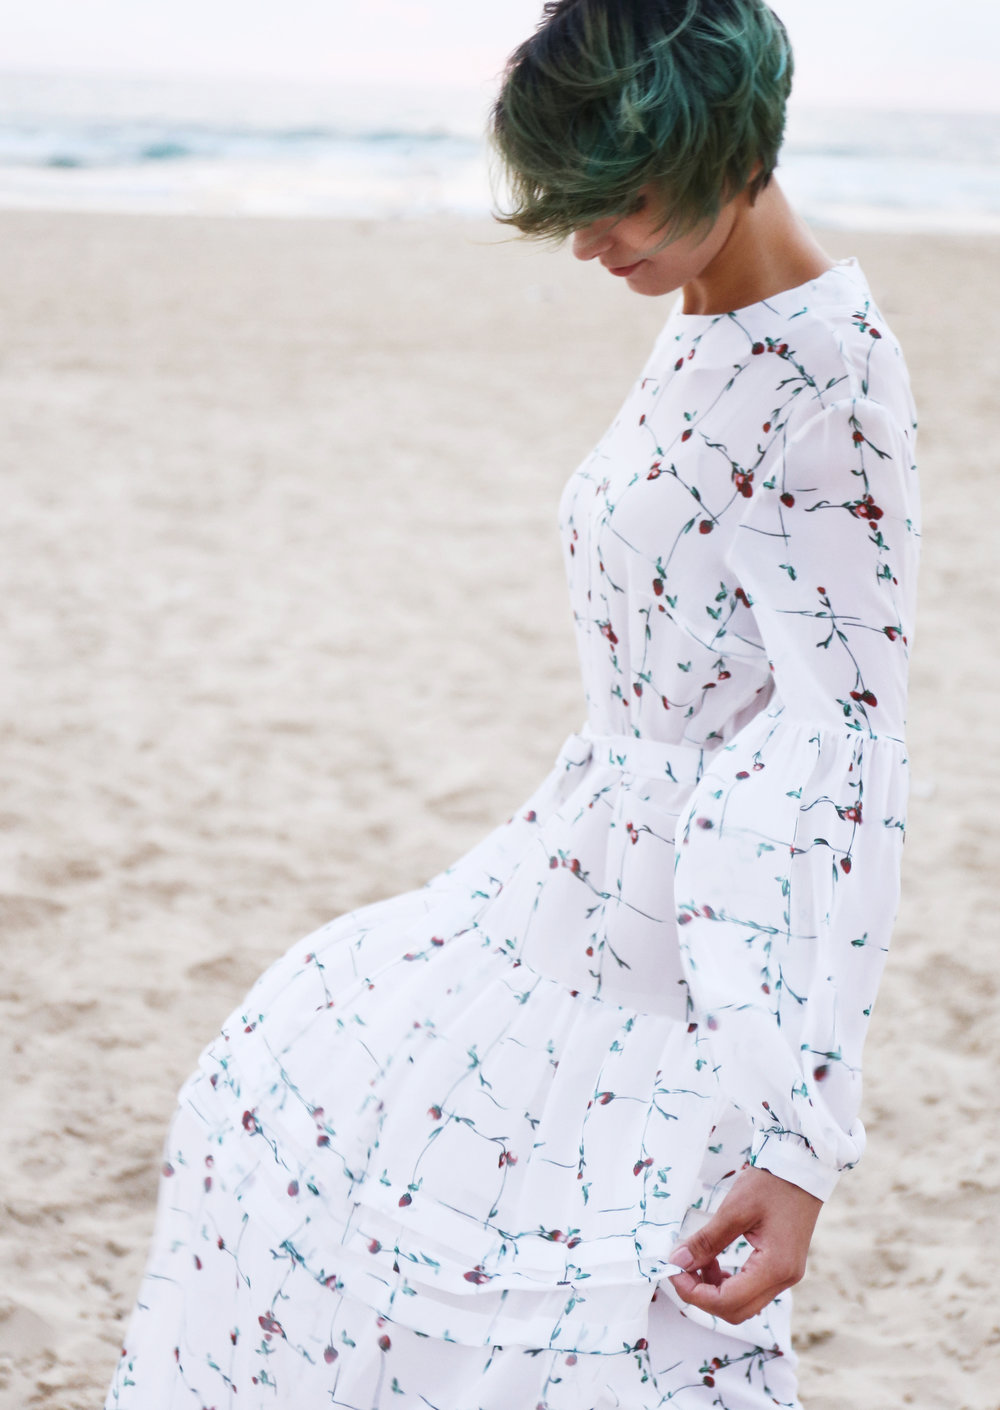 MOST WANTED - Delicate prints delivered to you in lightweight silk chiffon. Eternal style for the summer of your dreams.